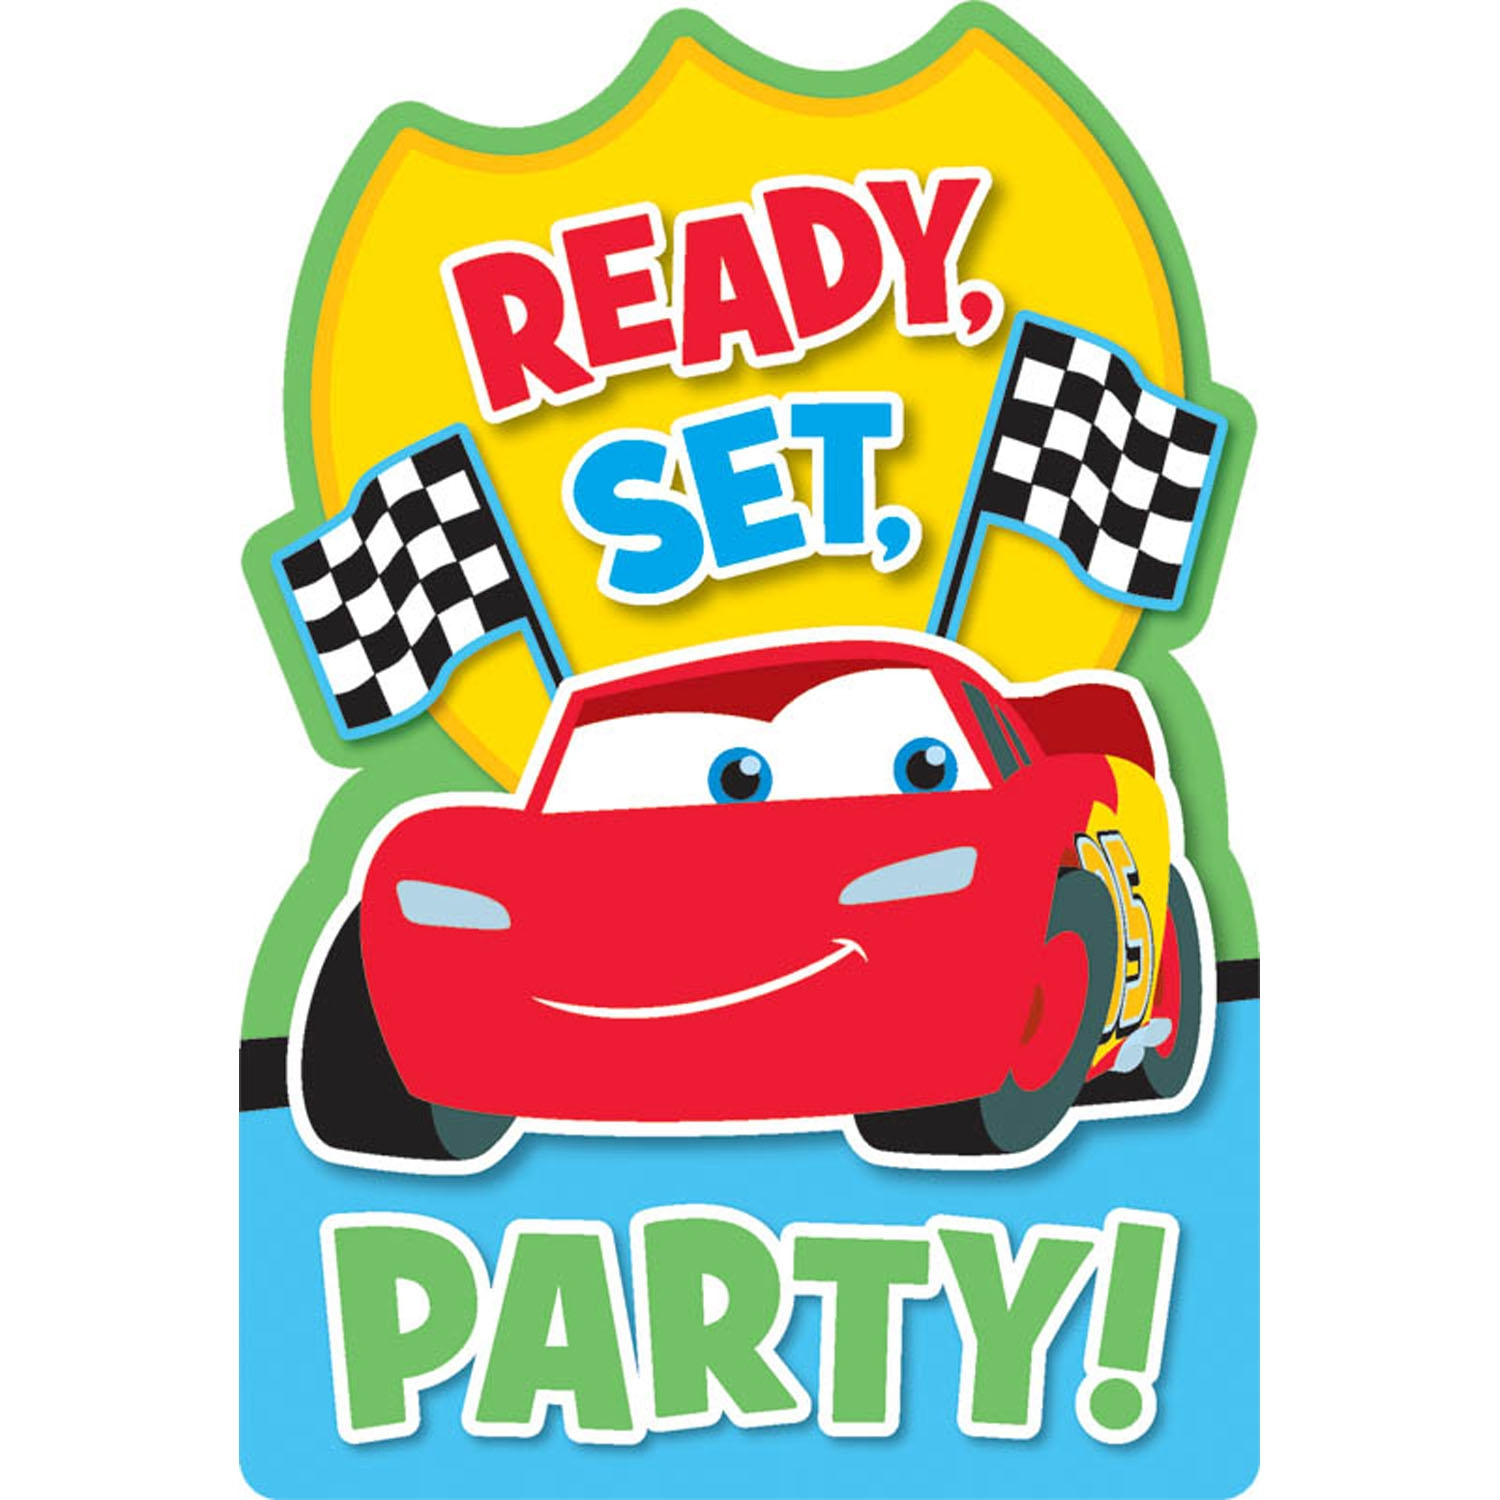 Disney cars 1st birthday clipart png black and white download Disney cars 1st birthday clipart - ClipartFest png black and white download